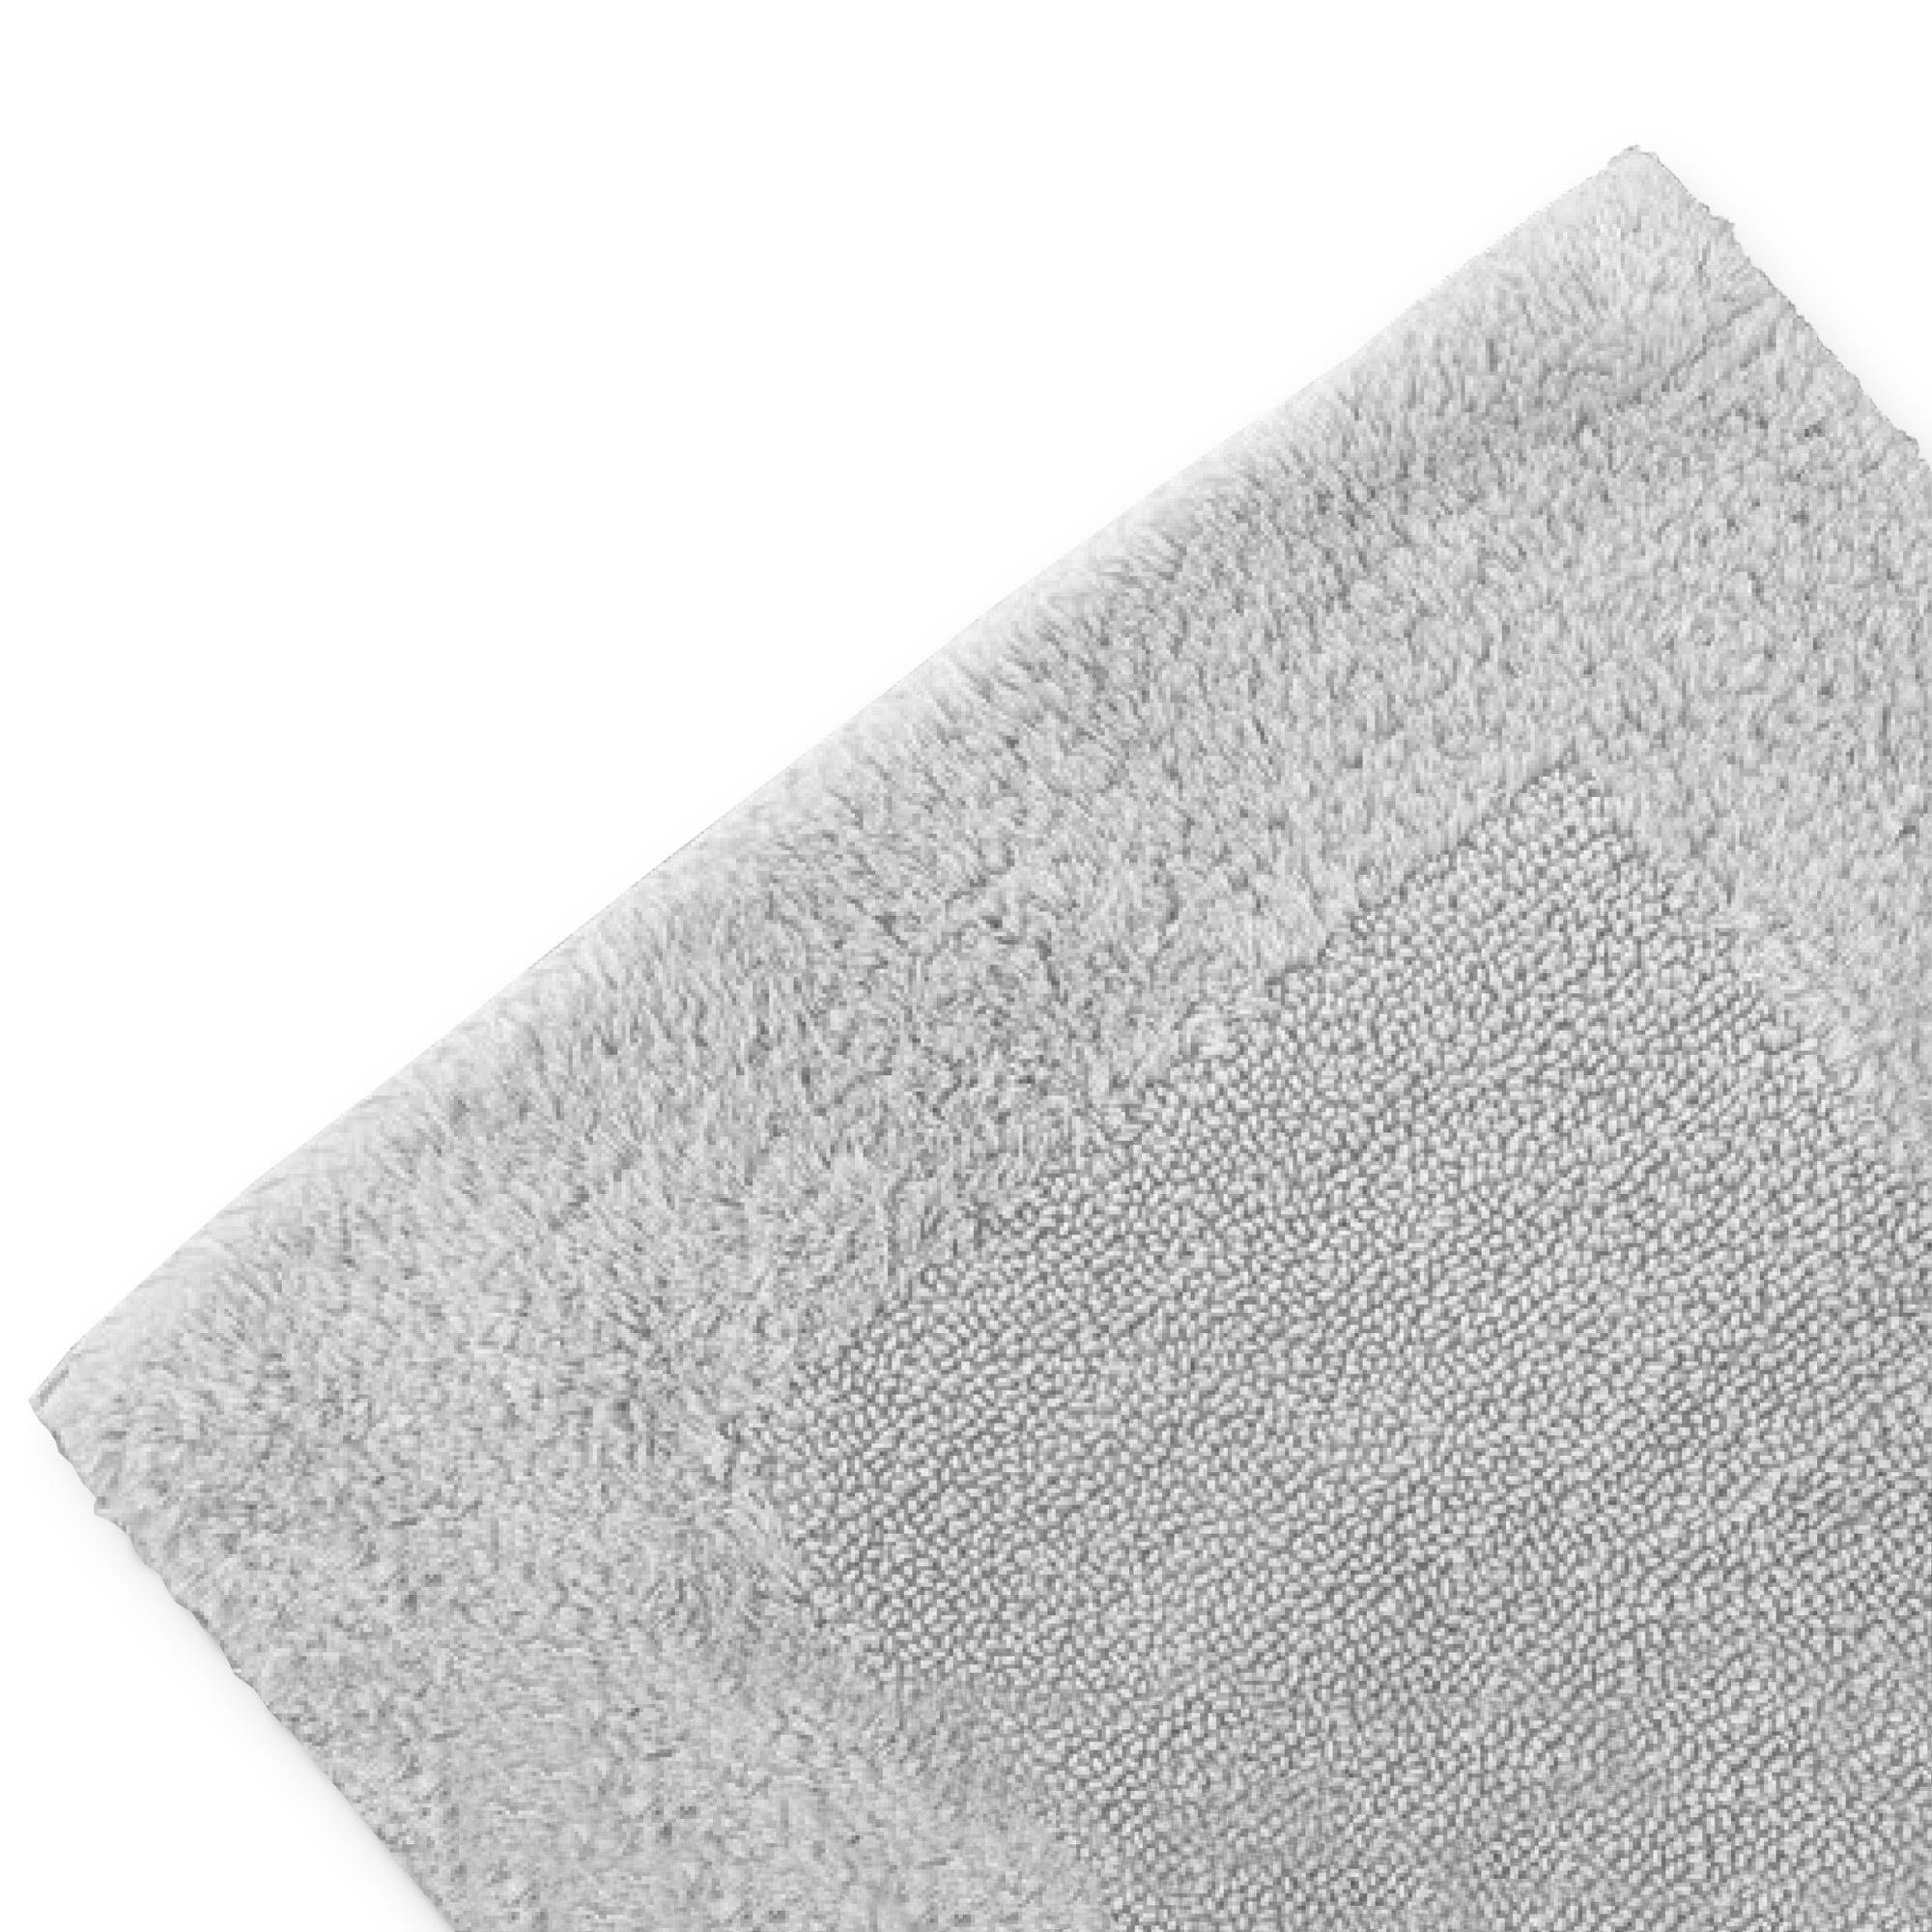 tapis de bain 60x90 luxor gris calcium 2000g m2 ebay. Black Bedroom Furniture Sets. Home Design Ideas